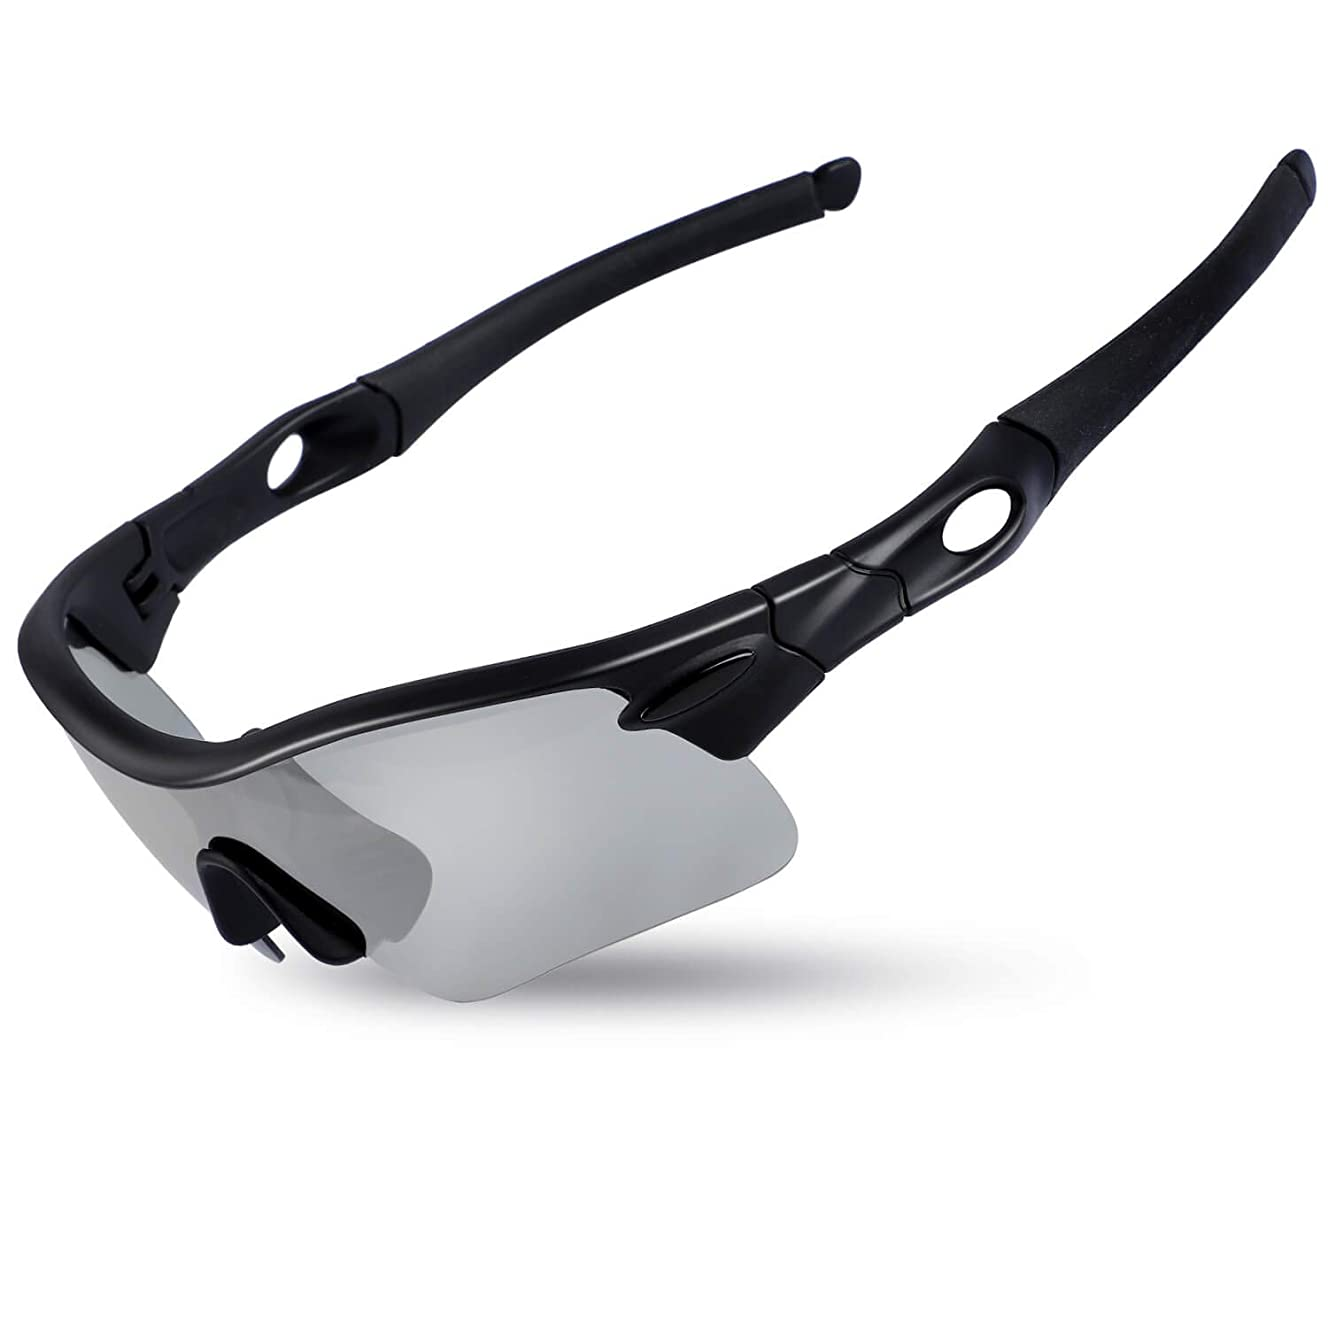 ICOCOPRO Polarized Sports Sunglasses Men & Women UV 400 Protection Sunglasses for Cycling Fishing Golf Hiking Unbreakable Superlight Frame - 4 Colors